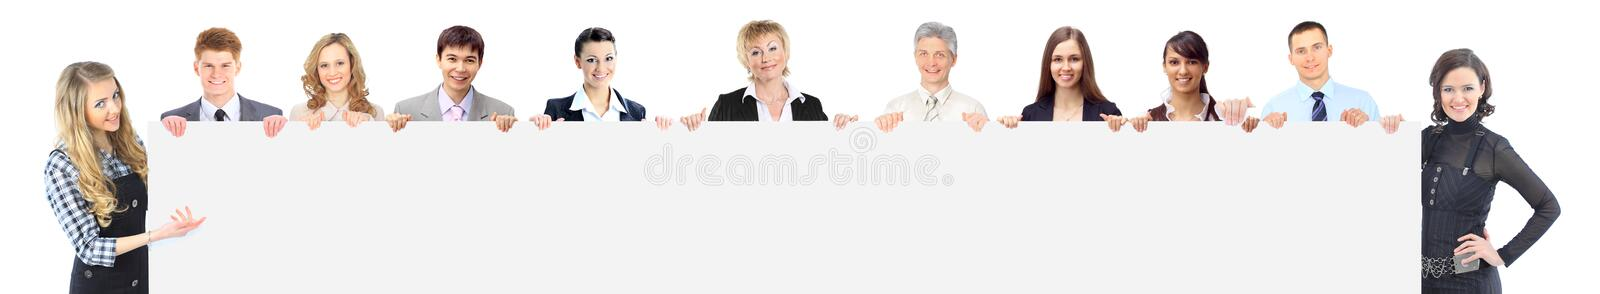 Large group smiling business people royalty free stock photos